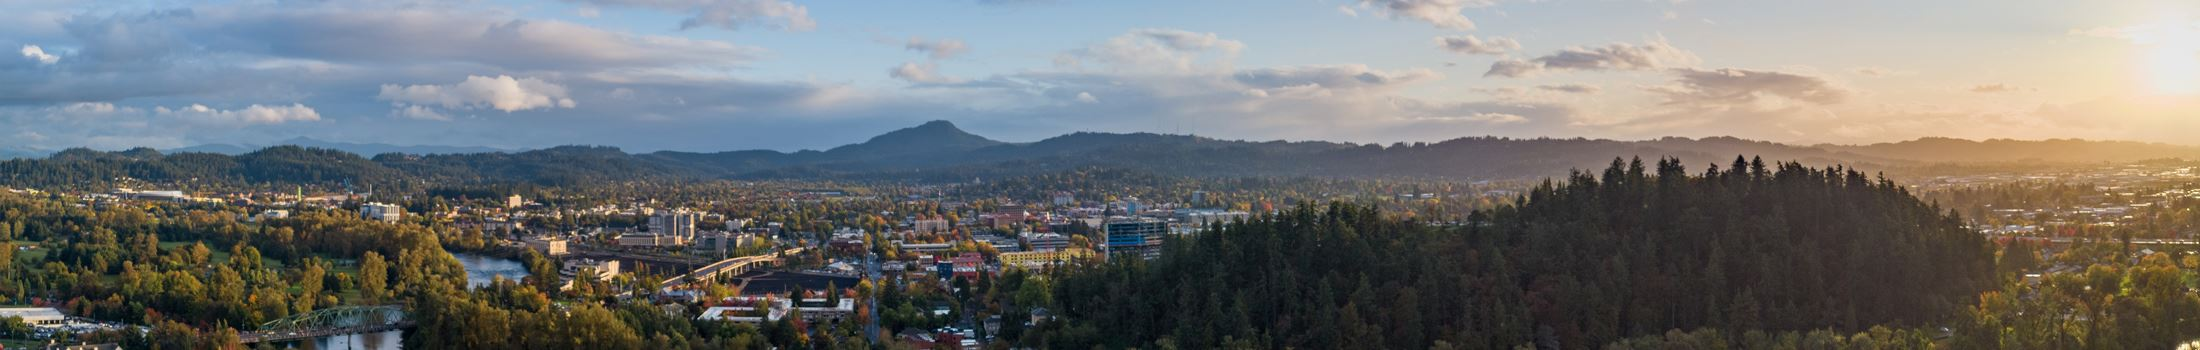 Overview of Eugene Oregon